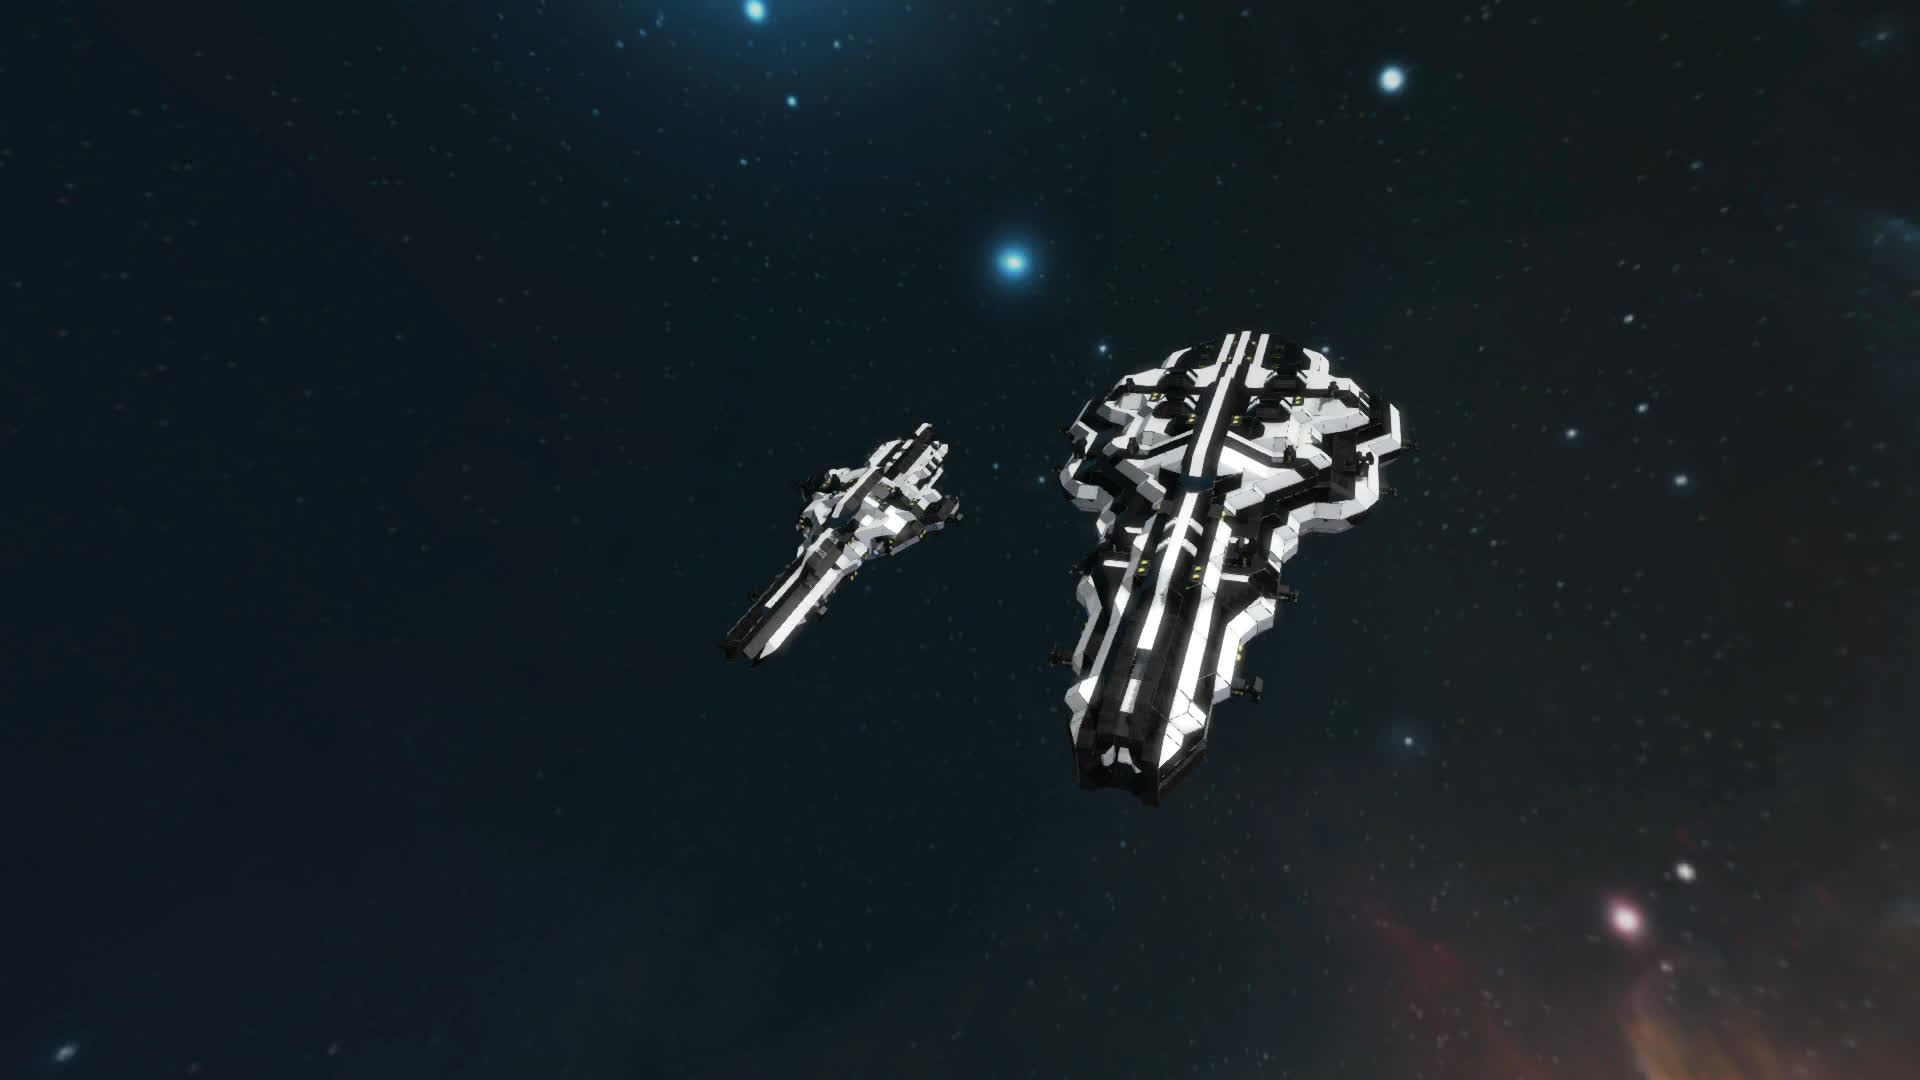 spaceengineers, Heavy Cruiser and Destroyer + missiles GIFs